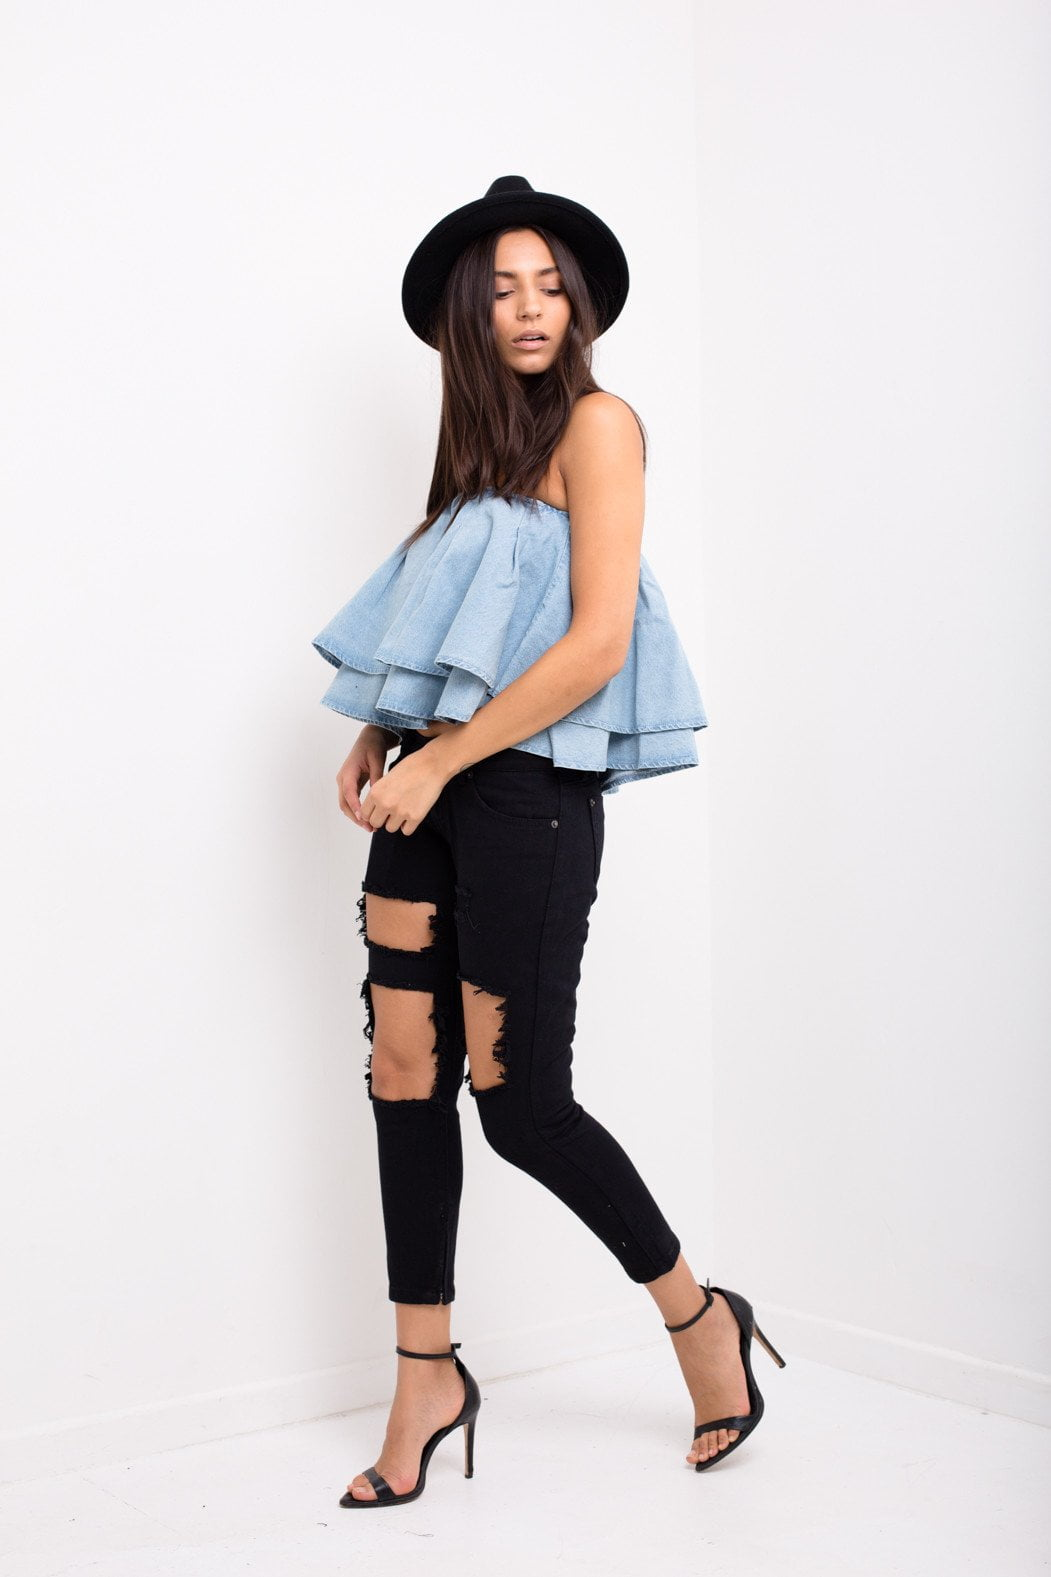 Liquor n Poker - Ruffle denim crop top - Liquor N Poker  Liquor N Poker